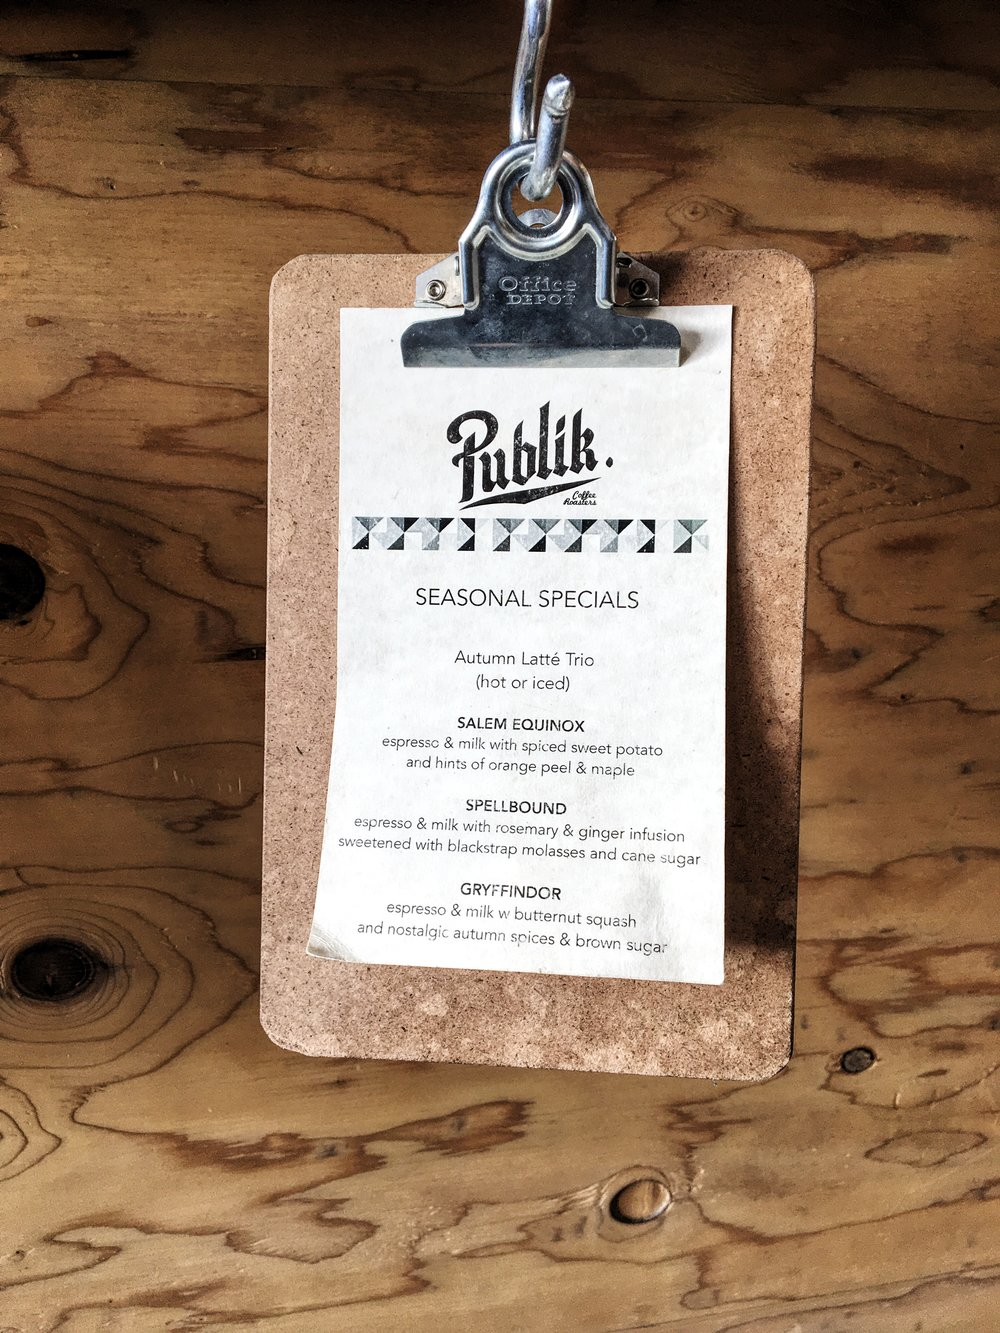 publik seasonal drink menu.JPG